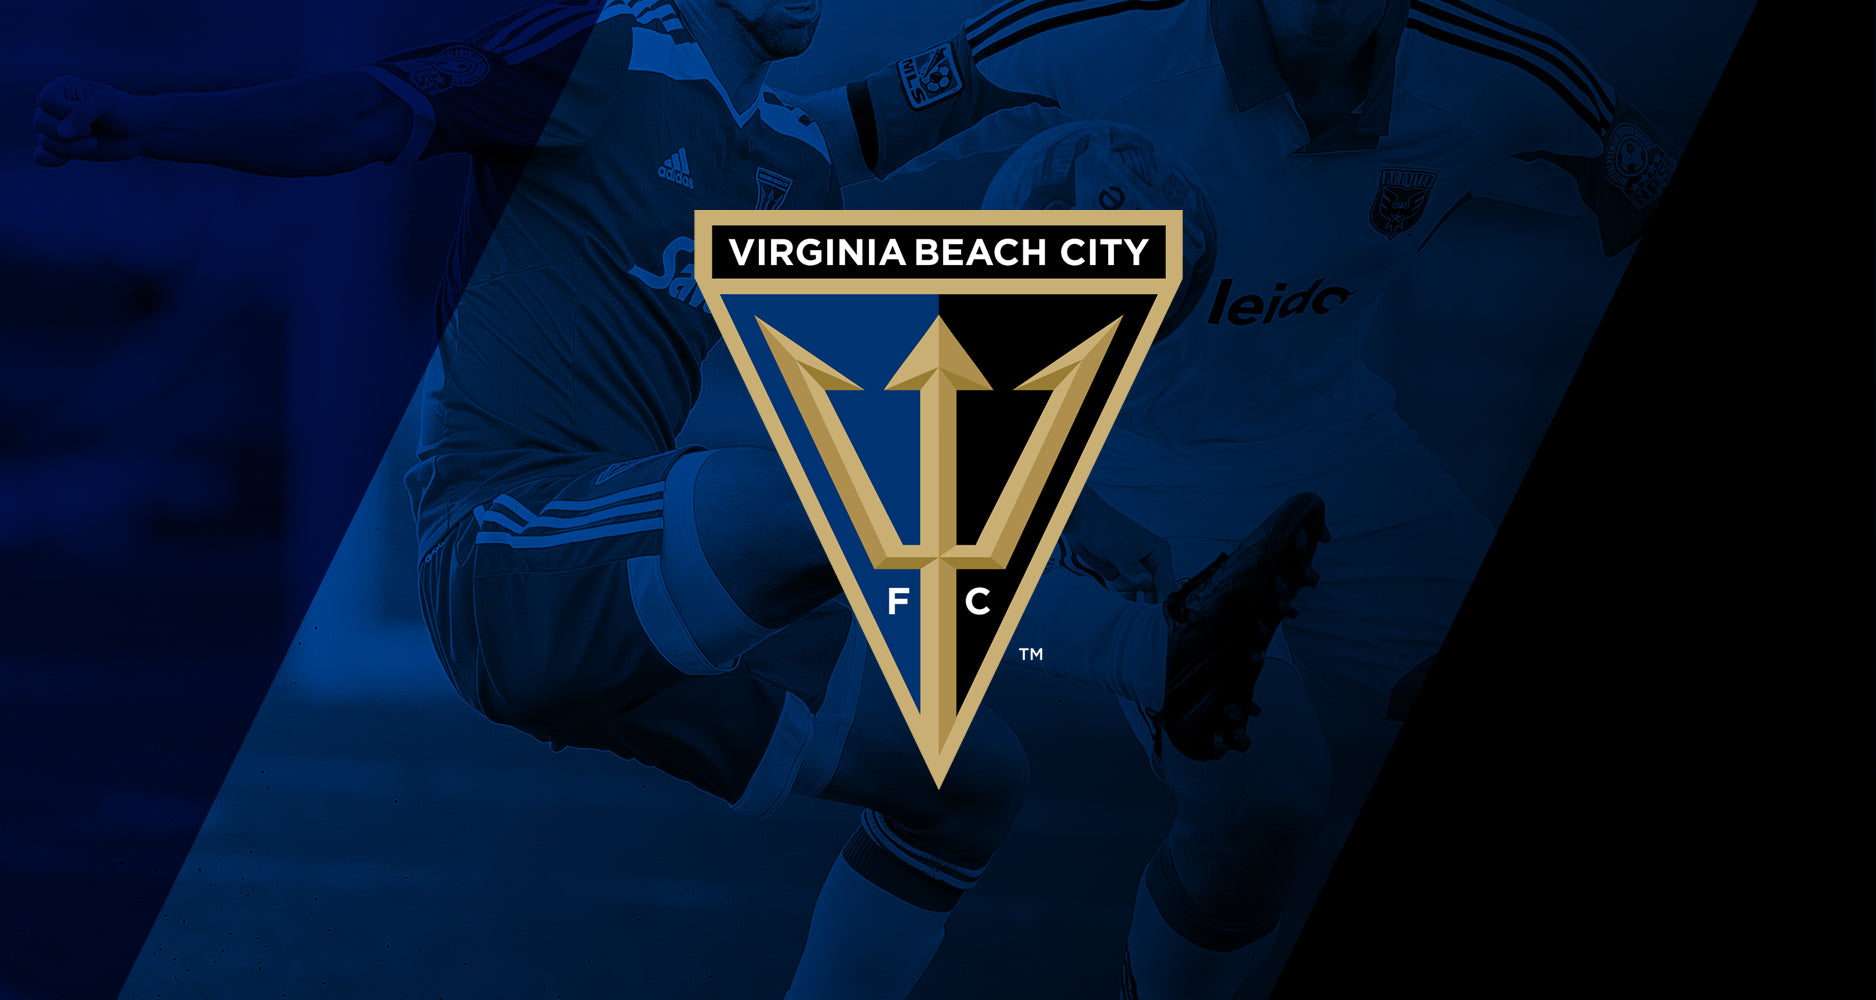 VB City FC Hire Former D.C. United of MLS Executive, Fred Matthes